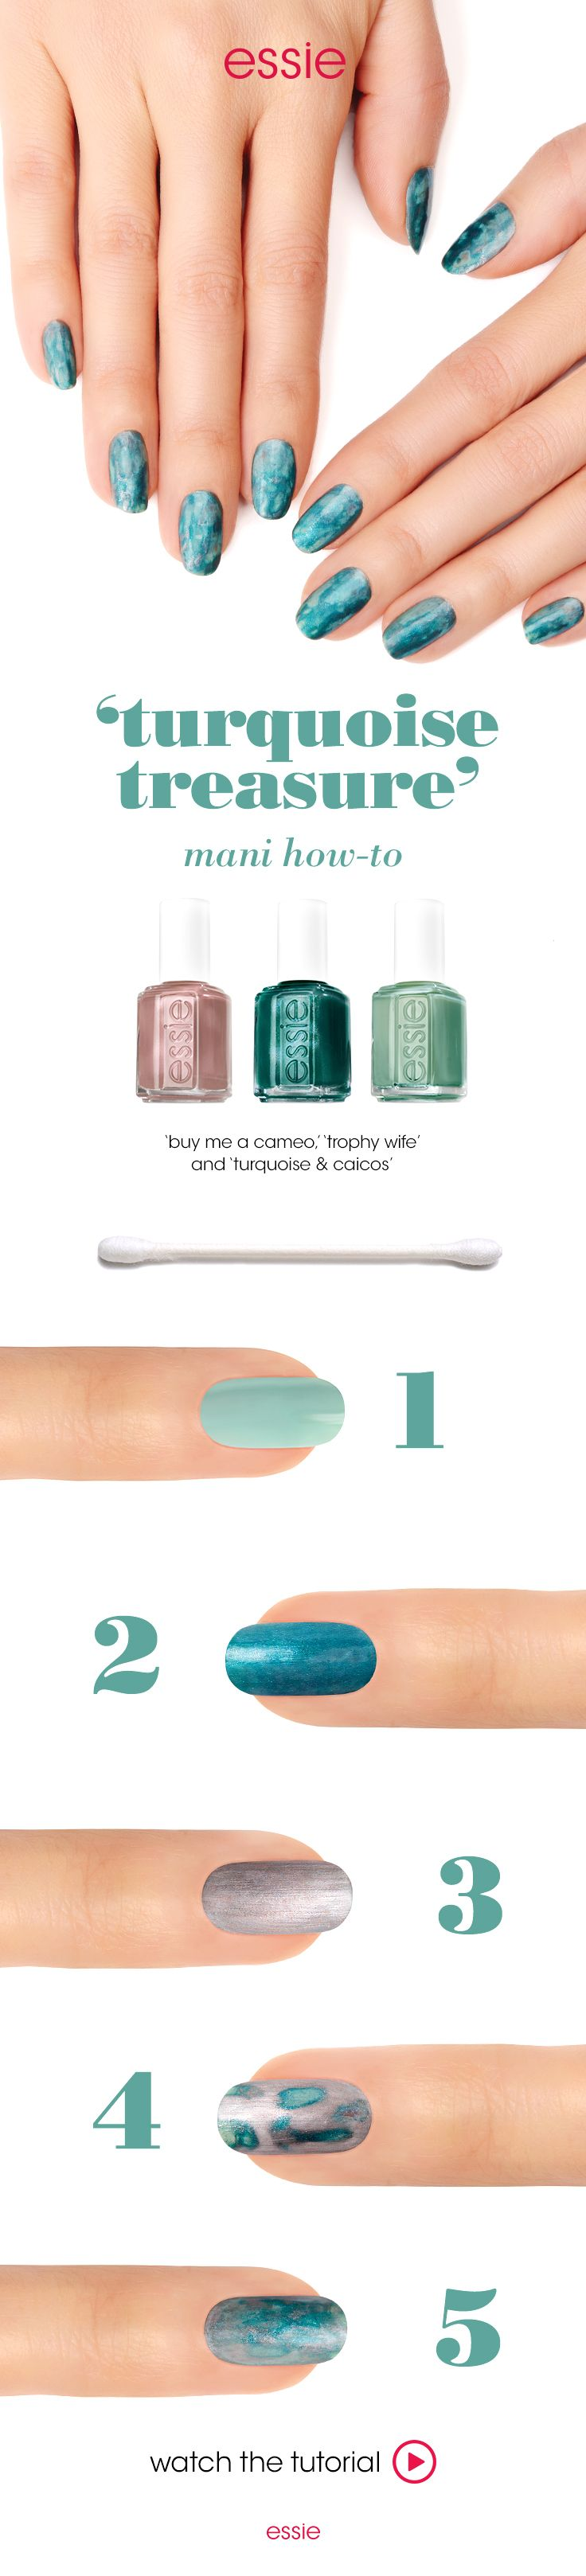 The soothing colors of turquoise are welcome on any day. The 'turquoise treasure' mani will surely live up to it's sophisticated name. Apply a base coat of essie 'millionails', follow it with 2 coats 'turquoise & caicos'. Next, apply one coat of 'trophy wife' and follow it up with a coat of 'buy me a cameo'. Let these 4 coats completely dry. Dab a little nail polish remover on a cotton swab and use a swiping or a dabbing motion over the nail. That's it! Your mani is ready for any occasion.